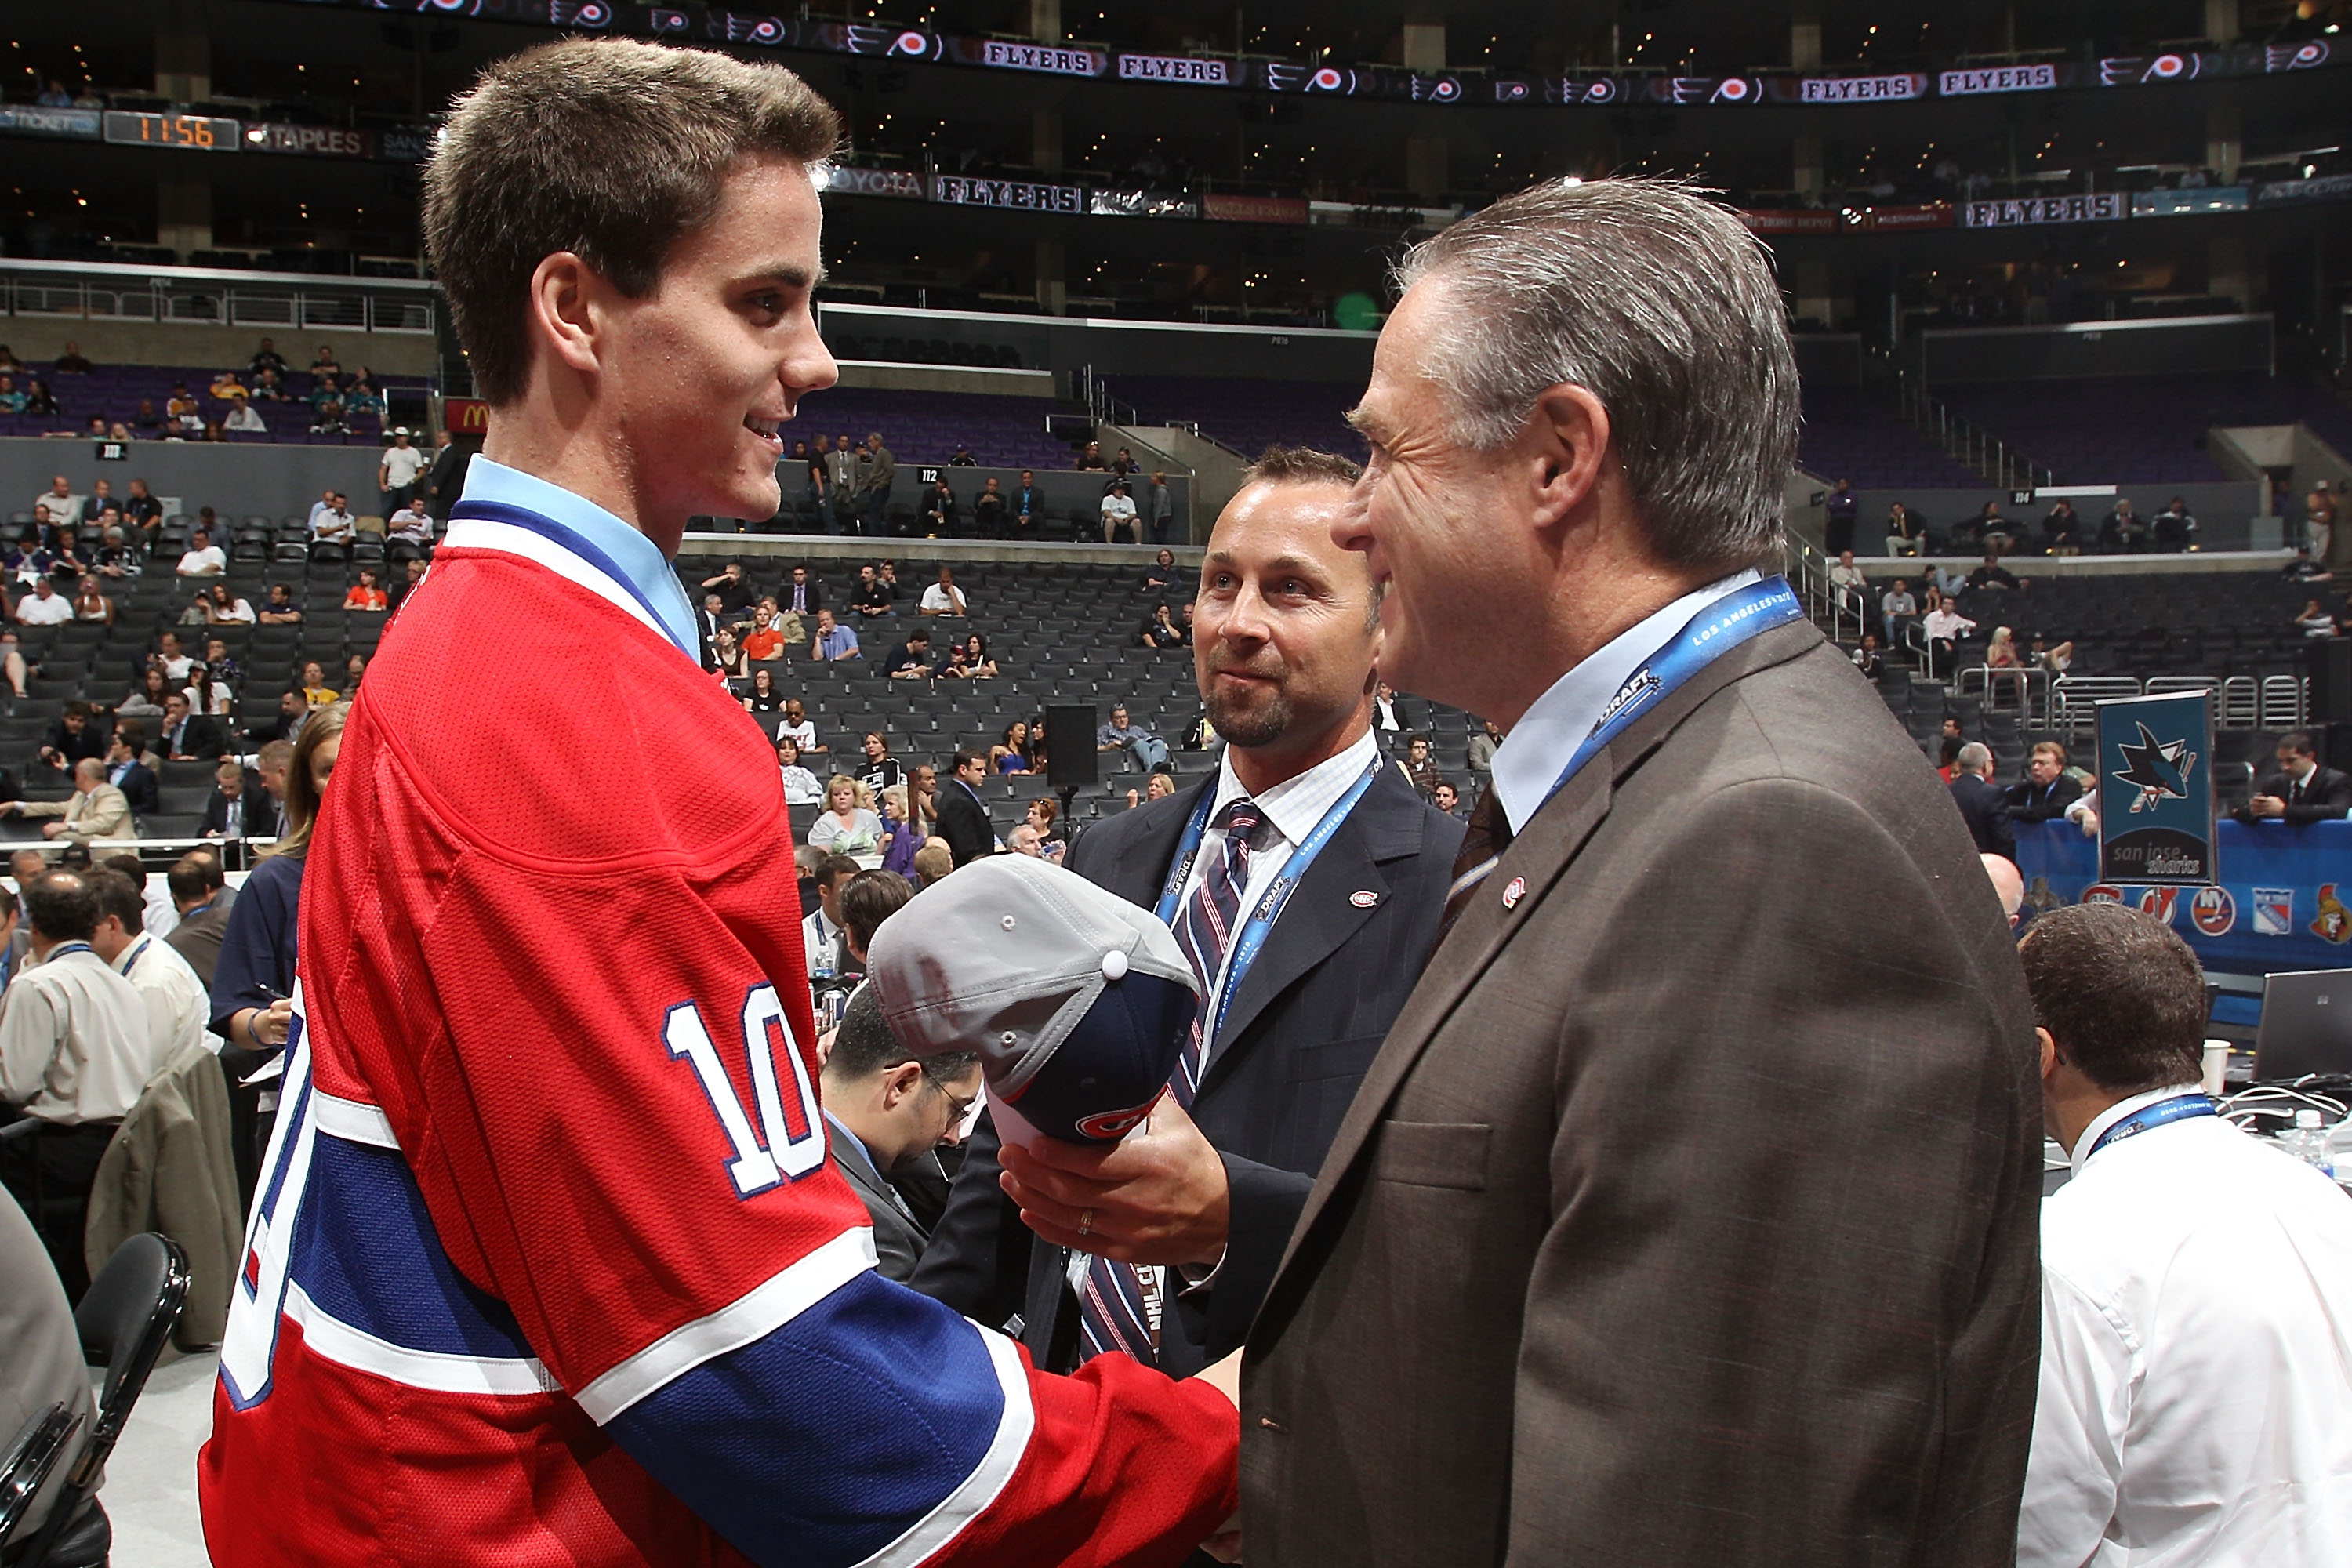 LOS ANGELES, CA - JUNE 26:  Morgan Ellis speaks with team personnel after being drafted in the fourth round by the Montreal Canadiens during day two of the 2010 NHL Entry Draft at Staples Center on June 26, 2010 in Los Angeles, California.  (Photo by Bruc